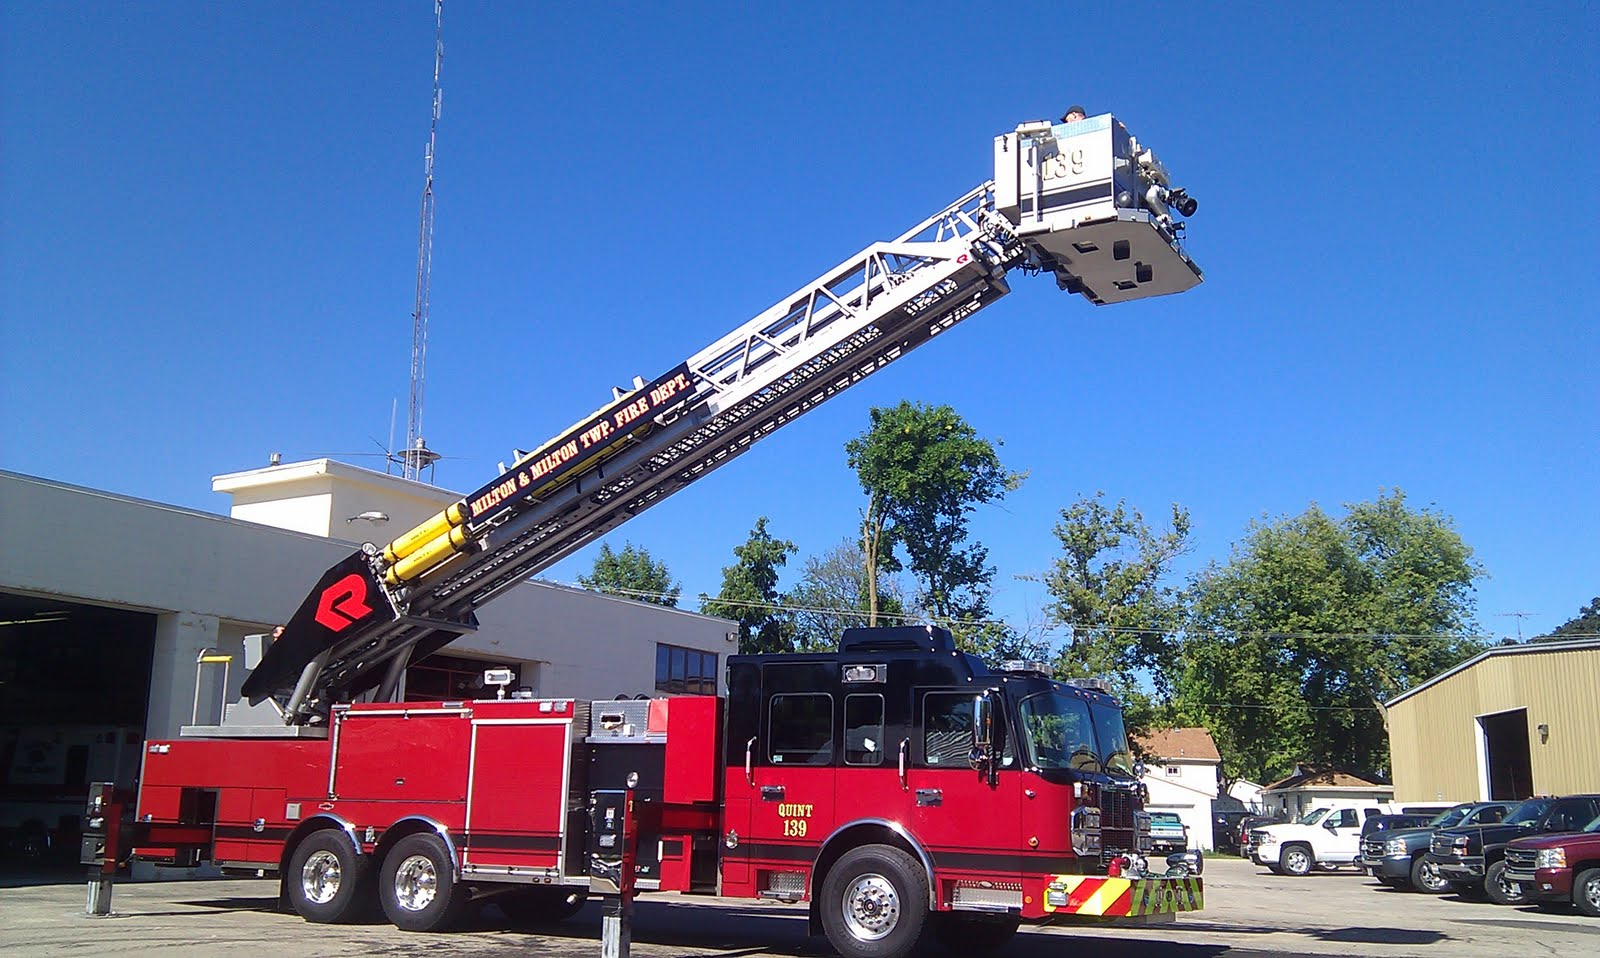 Milton Matters New Ladder Truck At The Fire Department